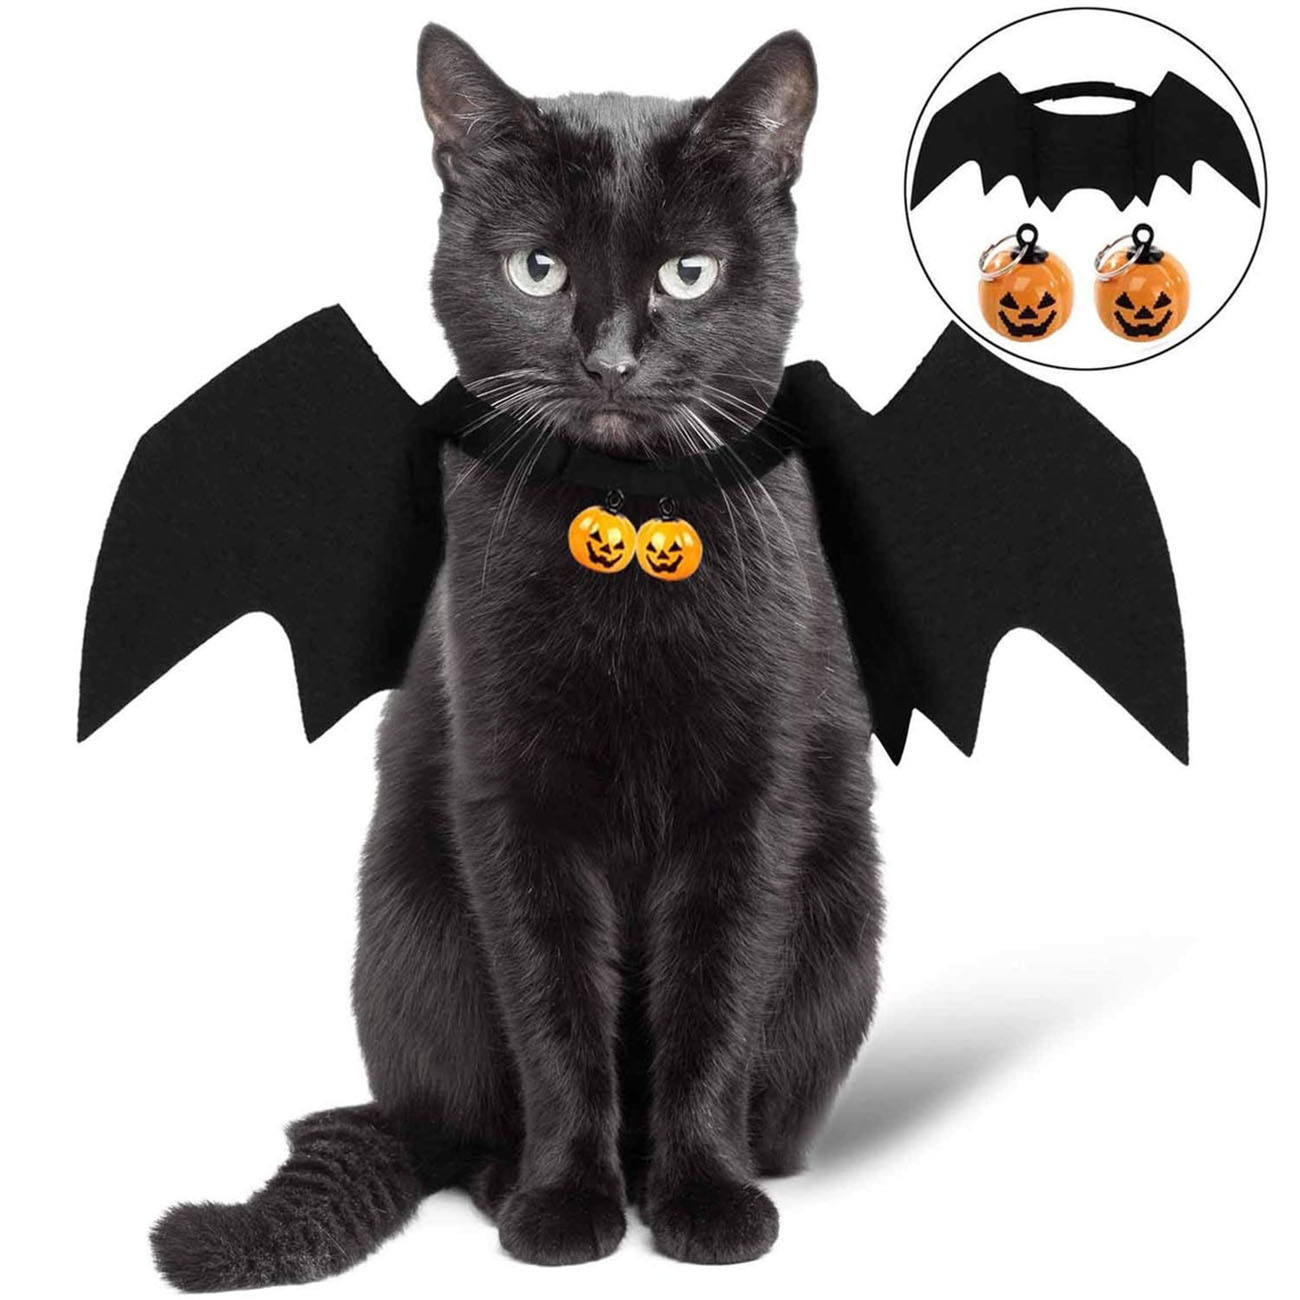 Bat wings Halloween costume for cats